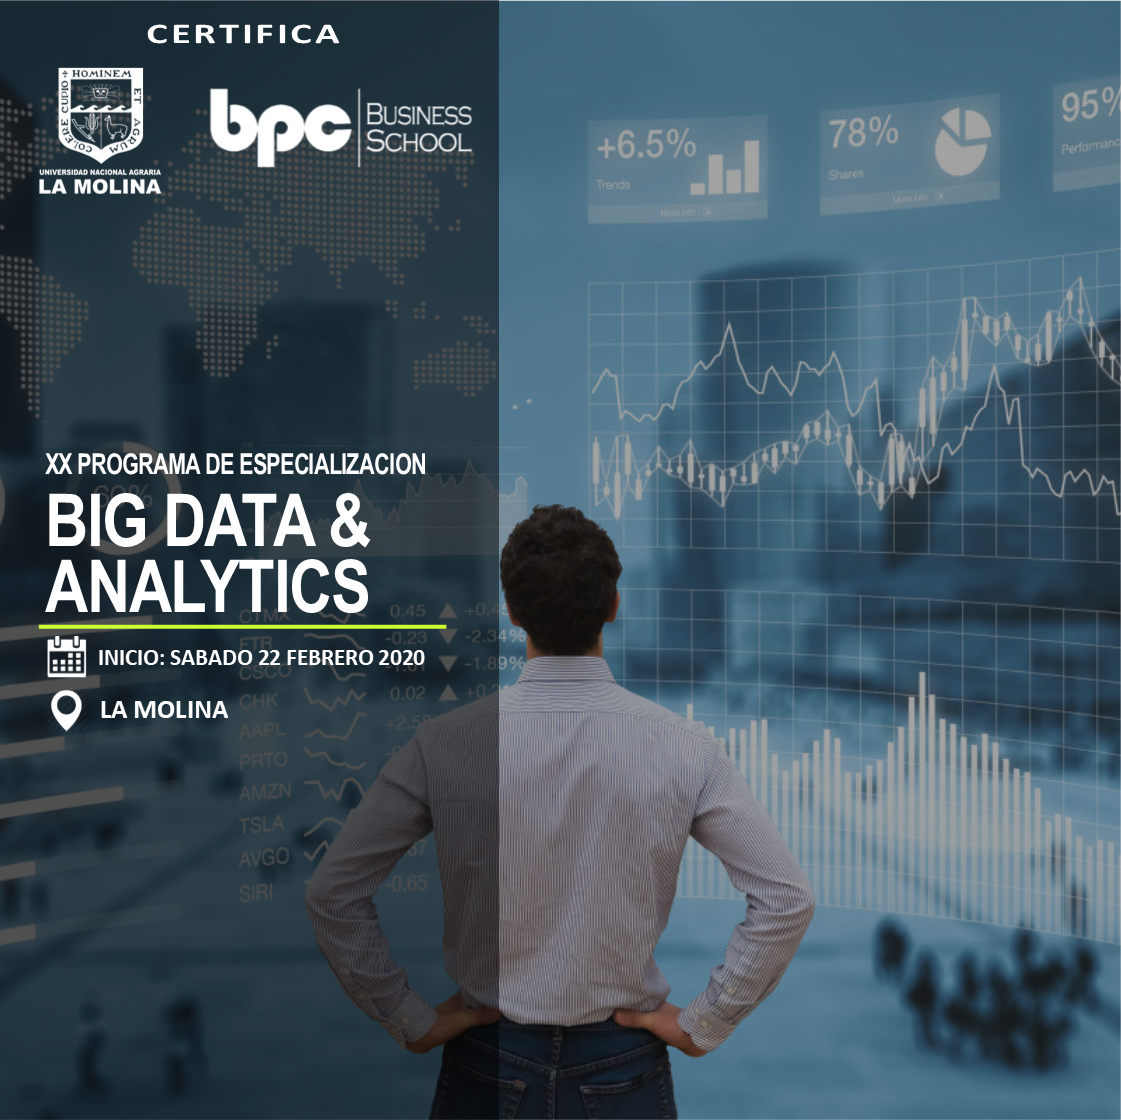 XX PDE en Big Data & Analytics (Estado de Emergencia)